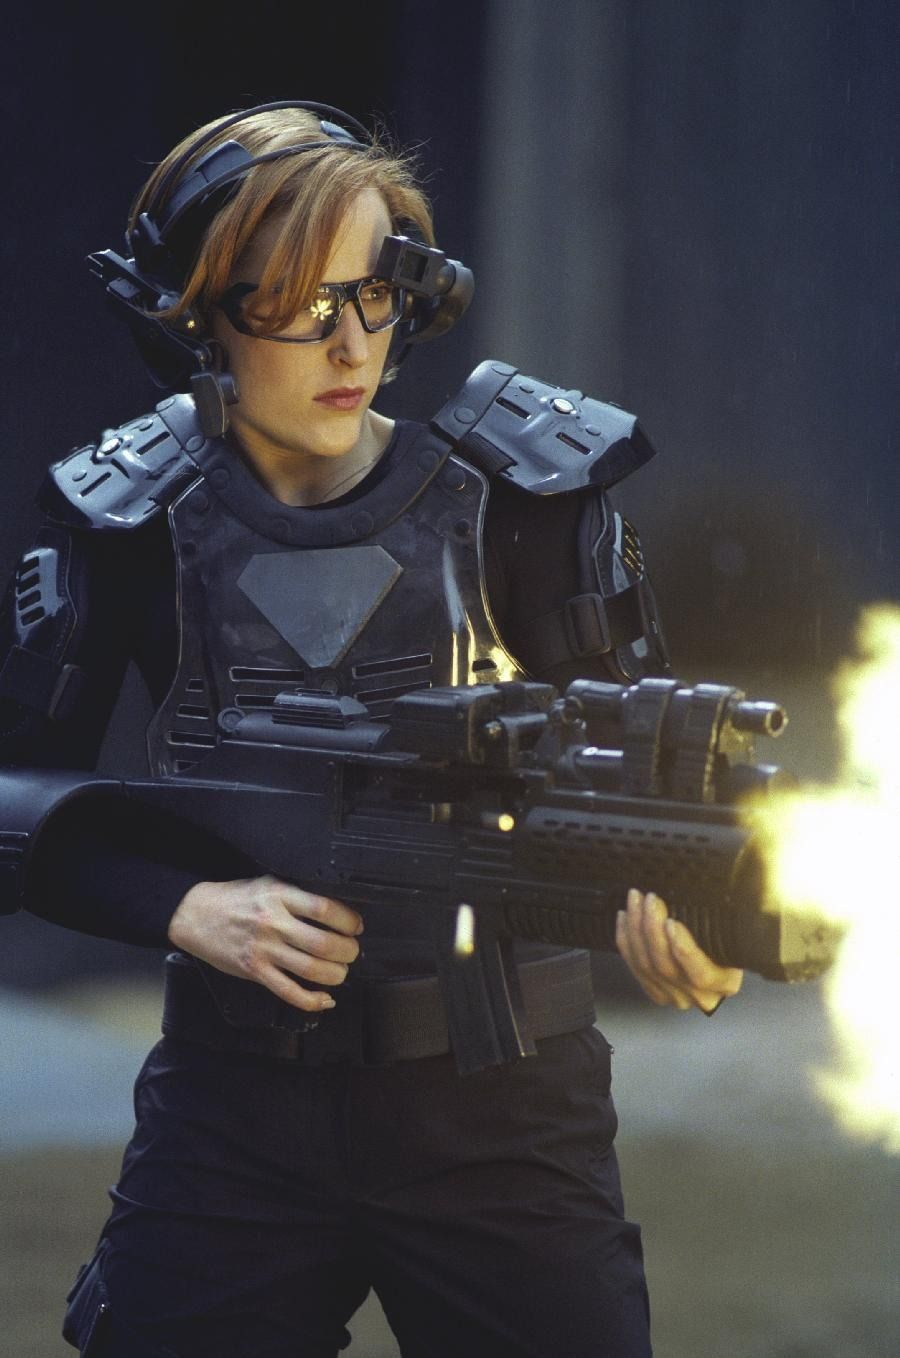 Scully fires a large automatic weapon while wearing a VR headset and other game gear.